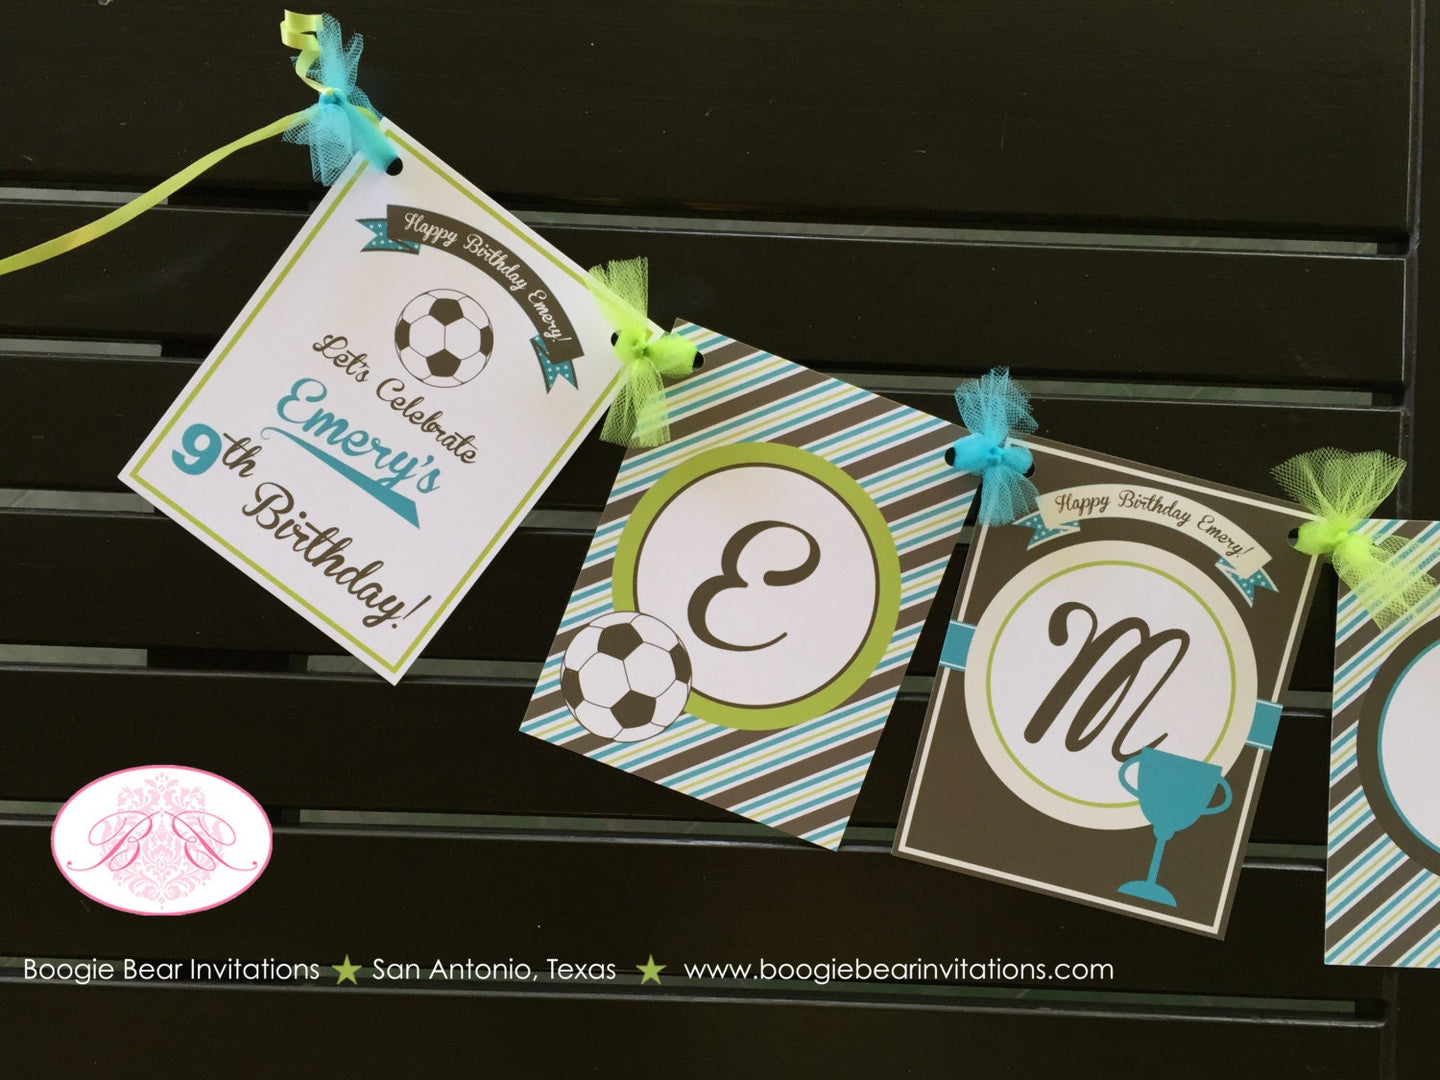 Retro Soccer Birthday Name Party Banner  Green Blue Brown Girl Boy 1st 2nd 3rd 4th 5th 6th 7th 8th 9th Boogie Bear Invitations Emery Theme